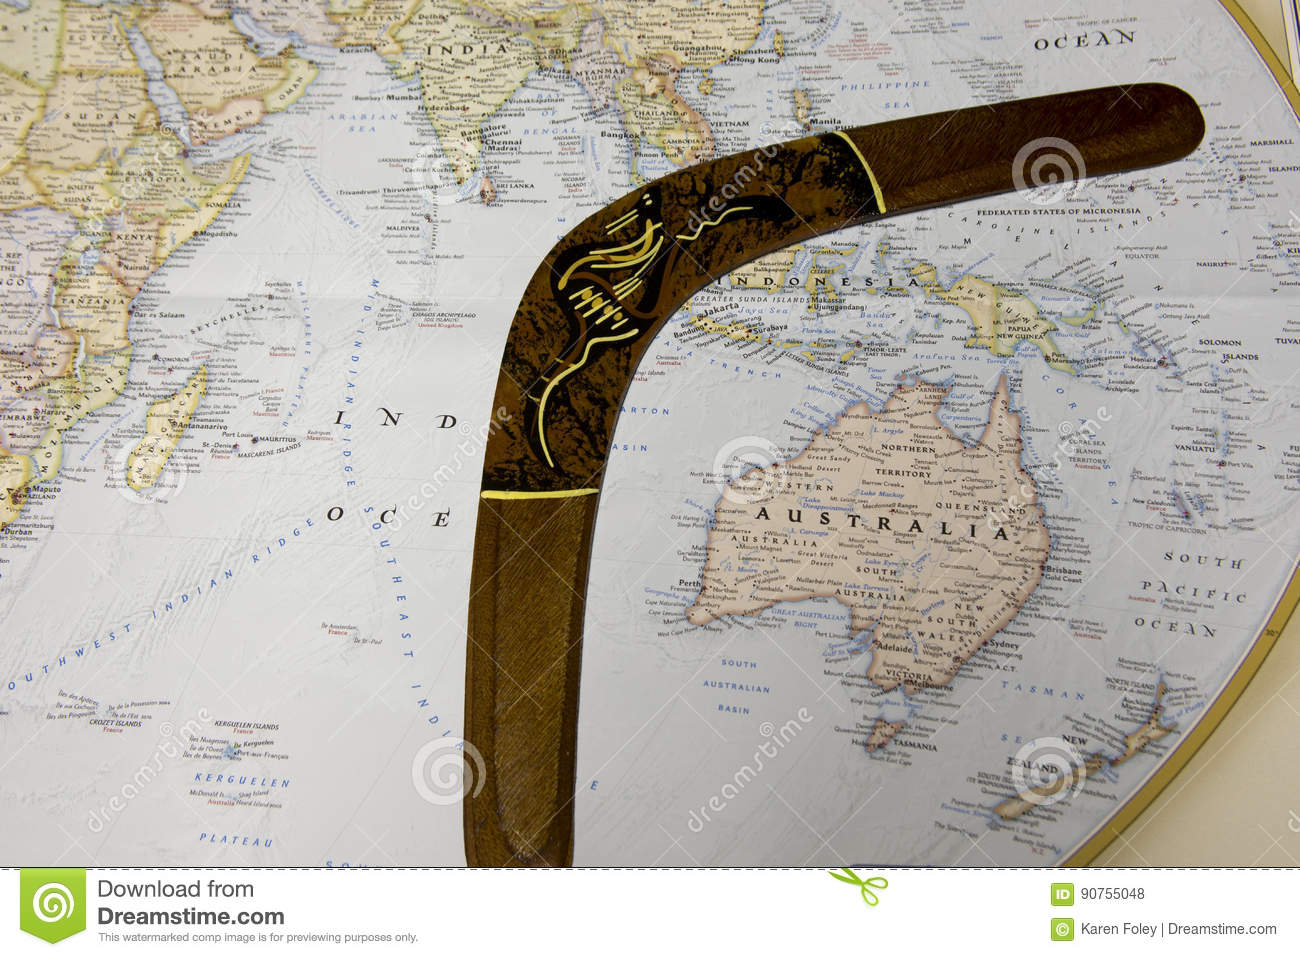 Australia on world map with wooden boomerang